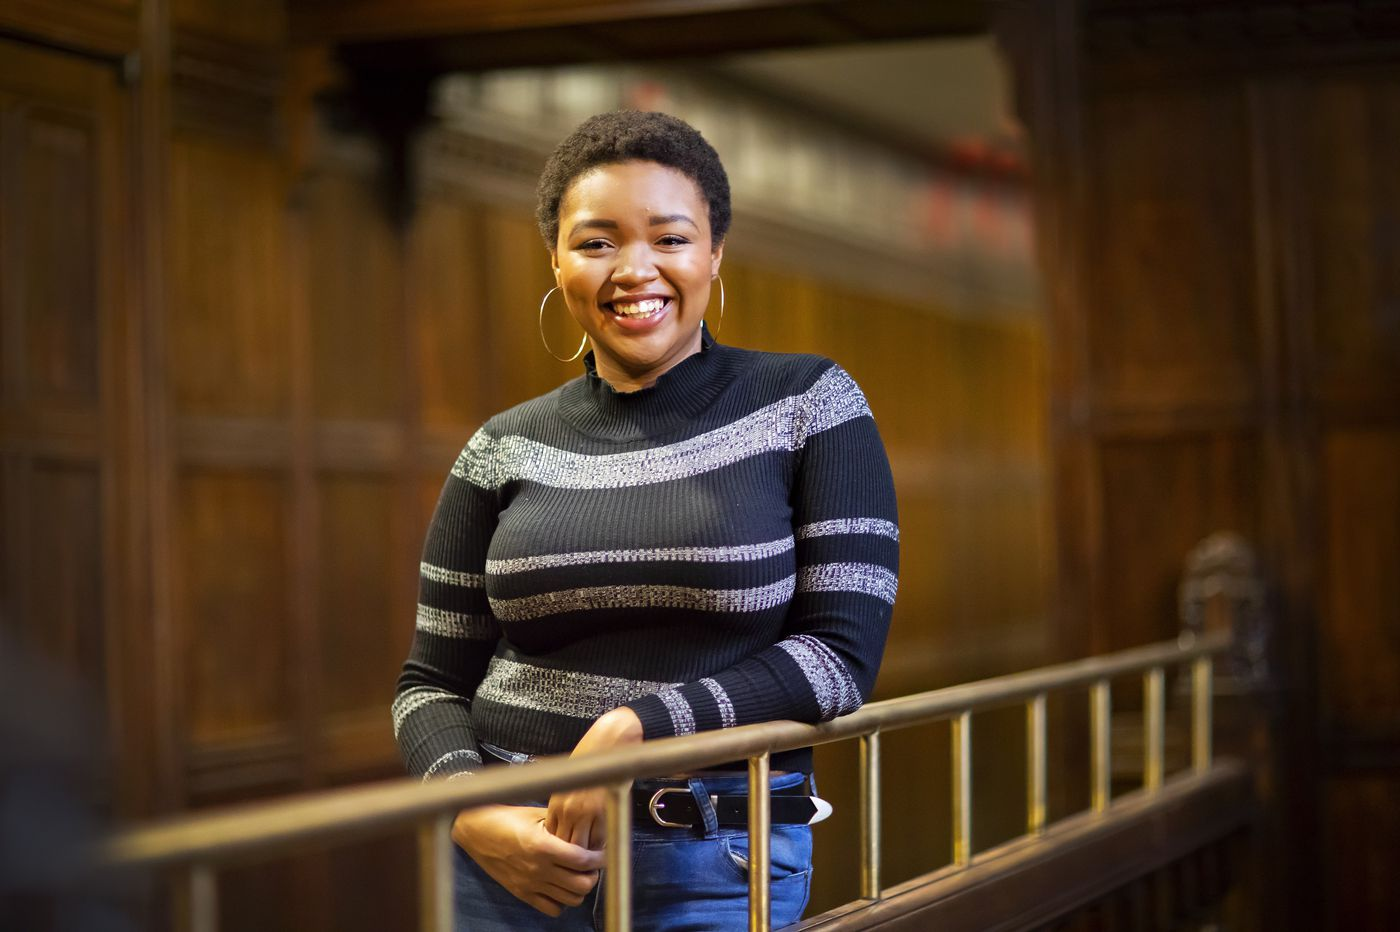 Penn senior and Philadelphia native wins coveted Rhodes scholarship